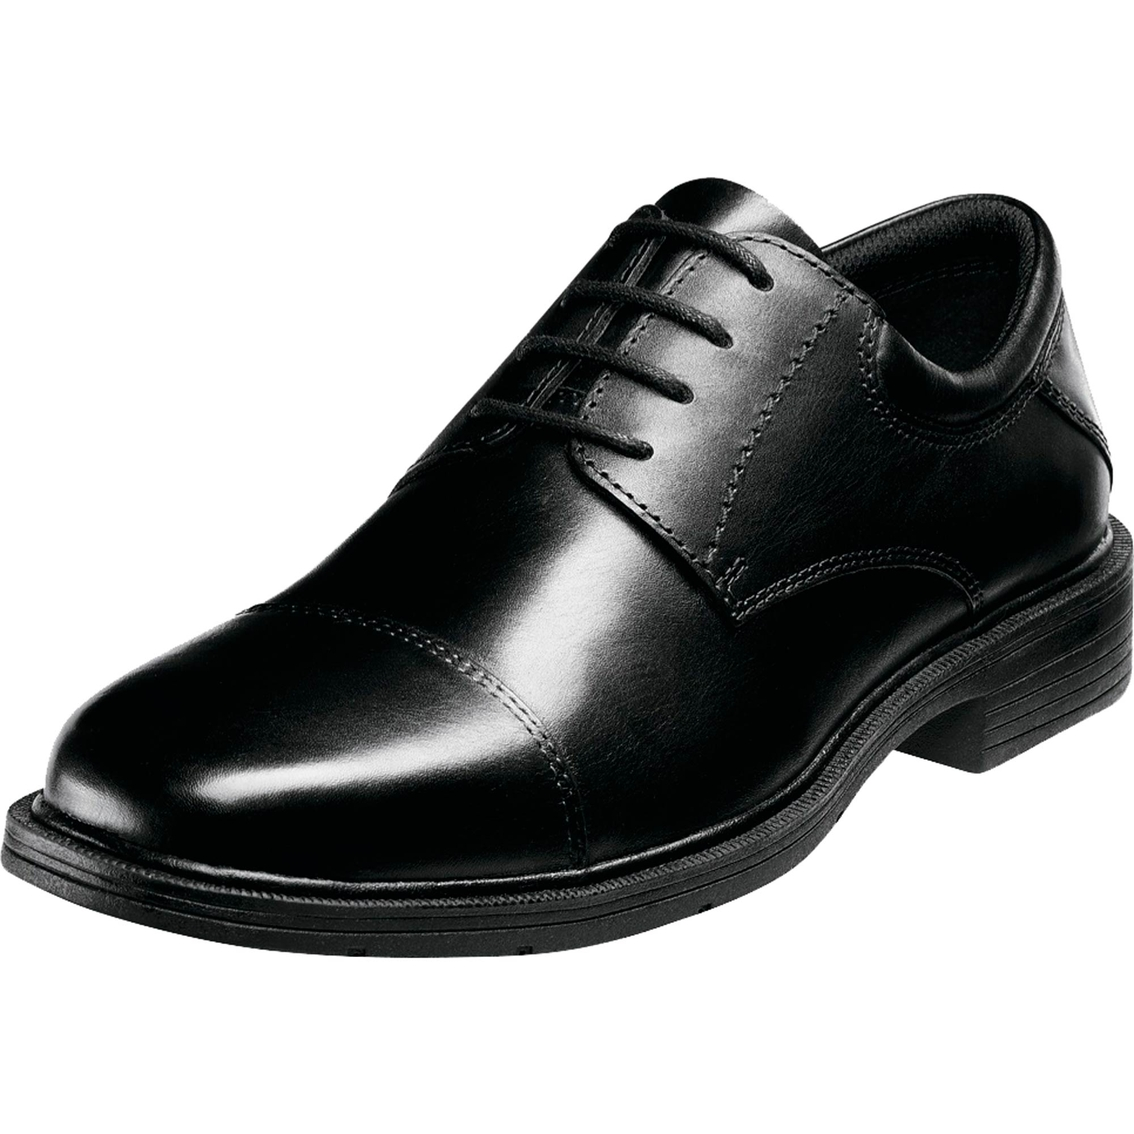 63e498e62cab4 Nunn Bush Men s Jordan Dress Casual Oxford Shoes